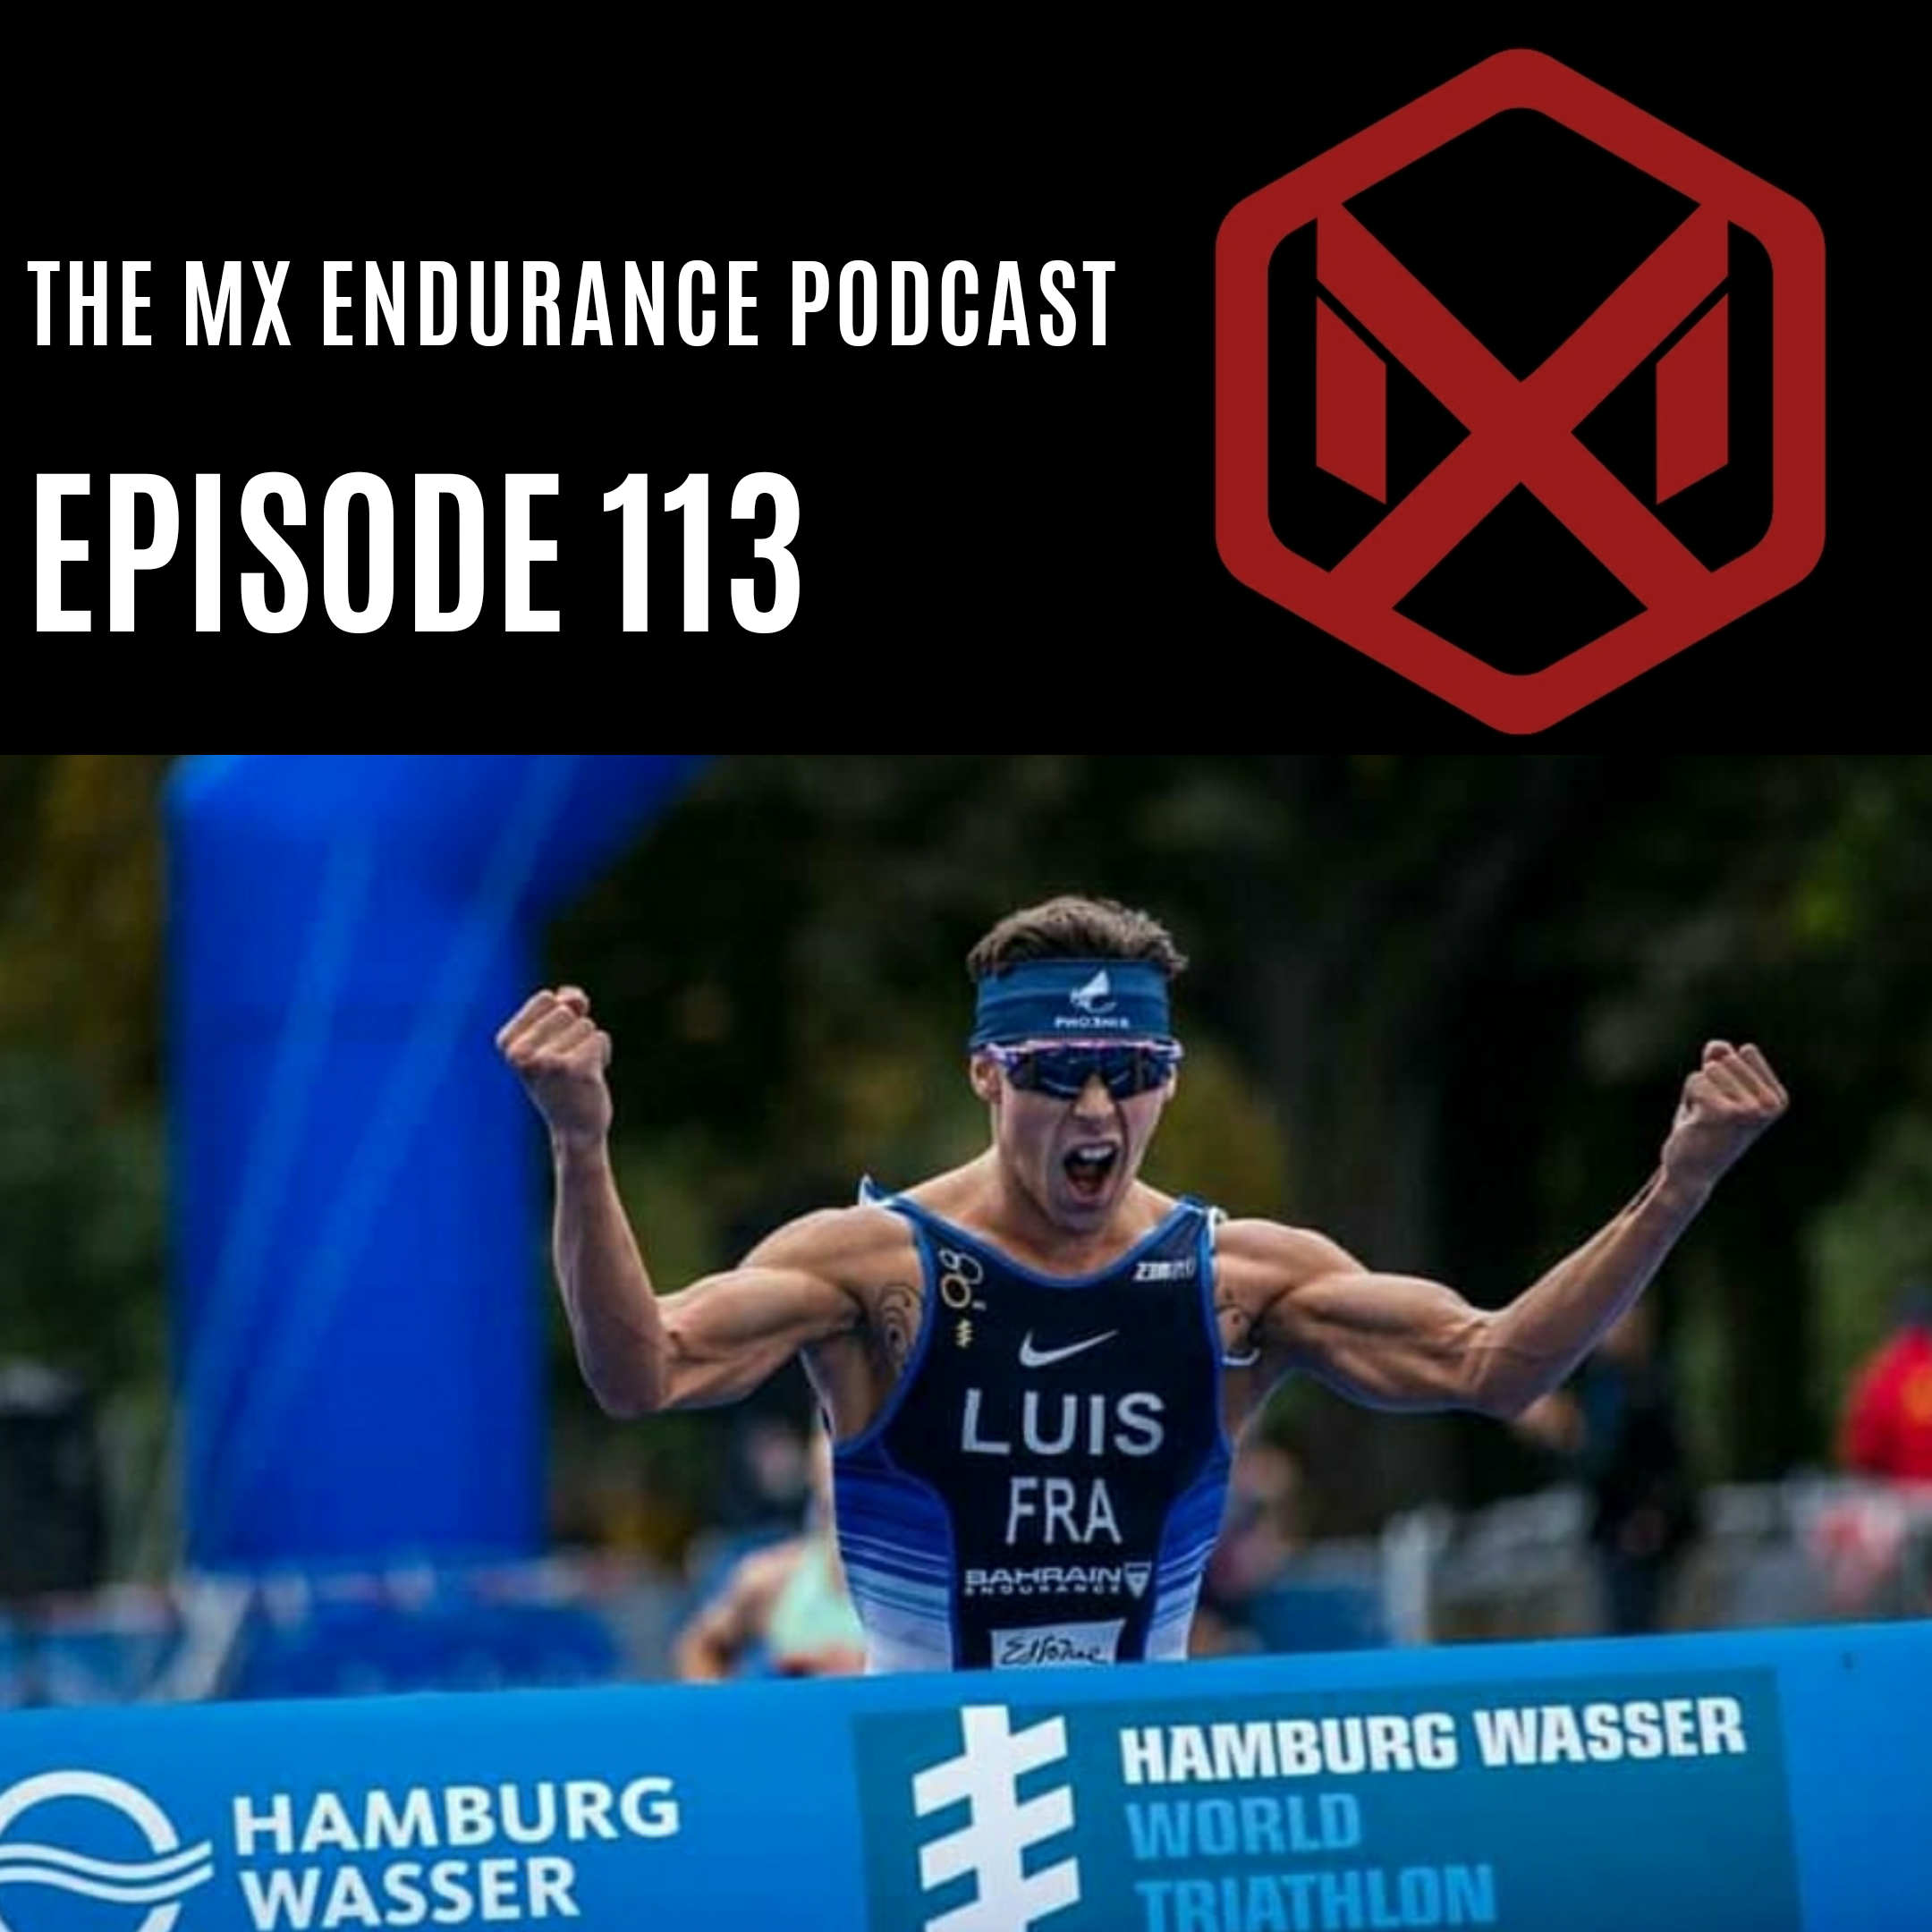 #113 - Is Iron Man the Future of Triathlon?